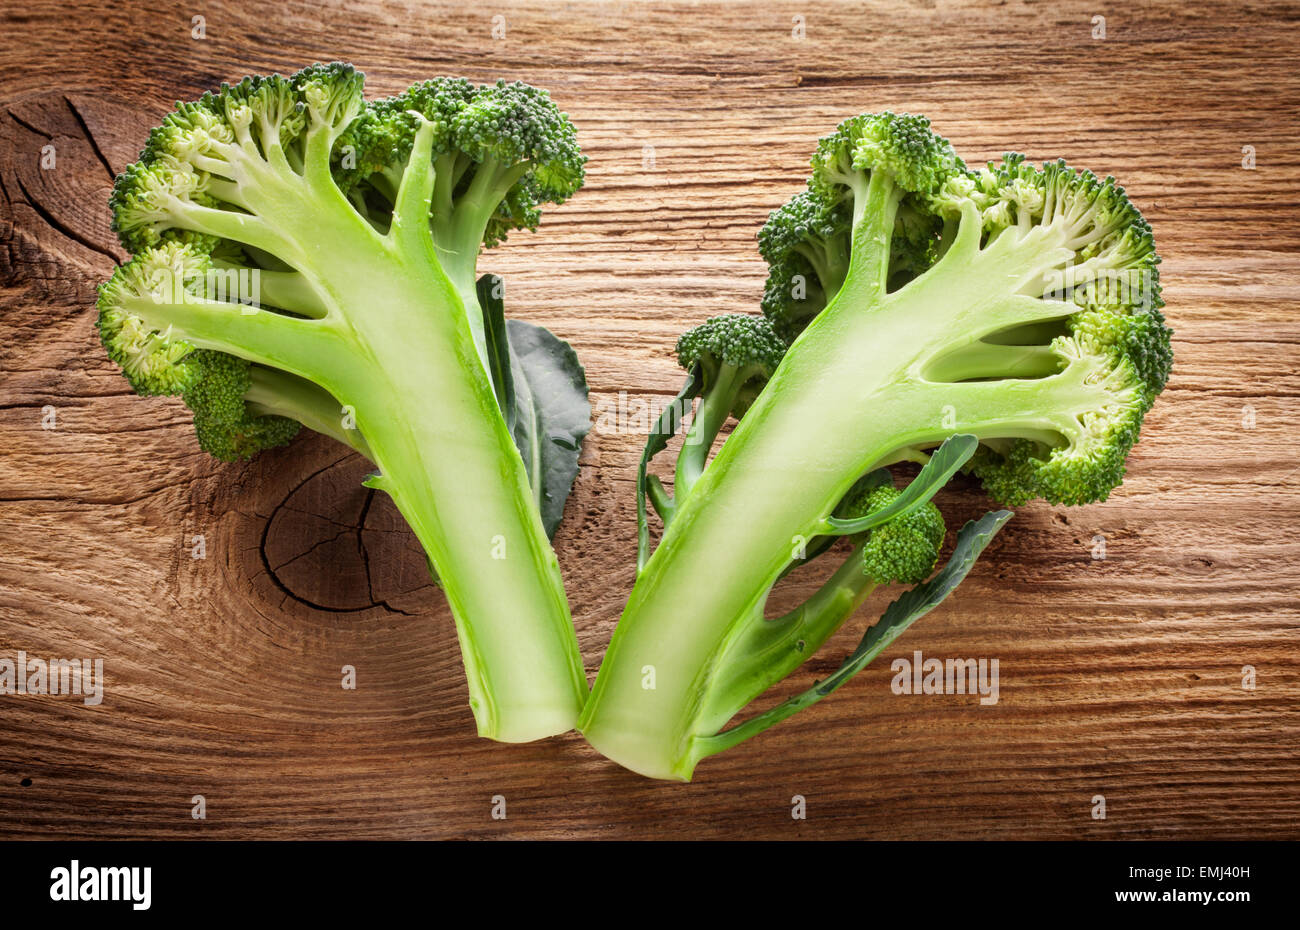 Fresh broccoli on the wooden table - Stock Image